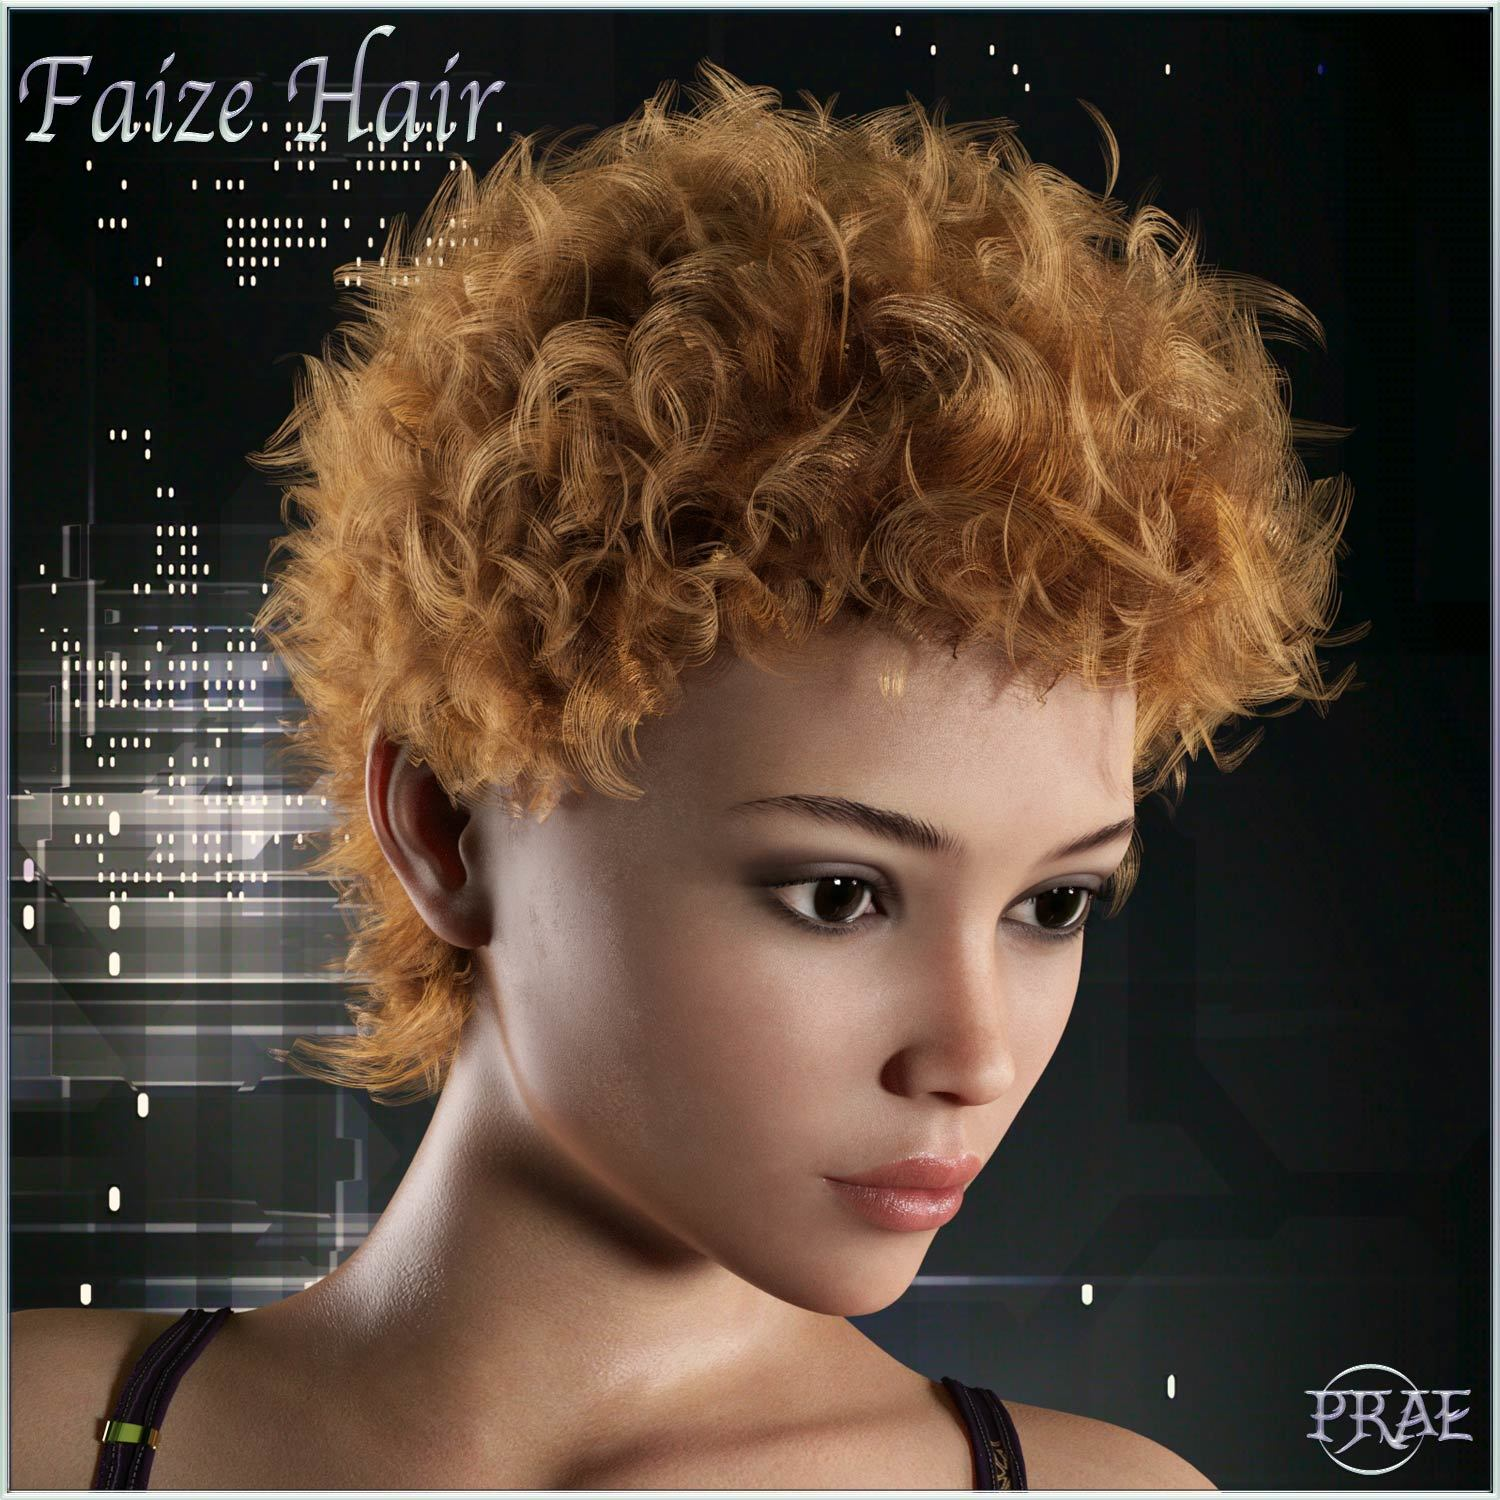 Prae-Faize Hair For G3/G8 Daz by prae